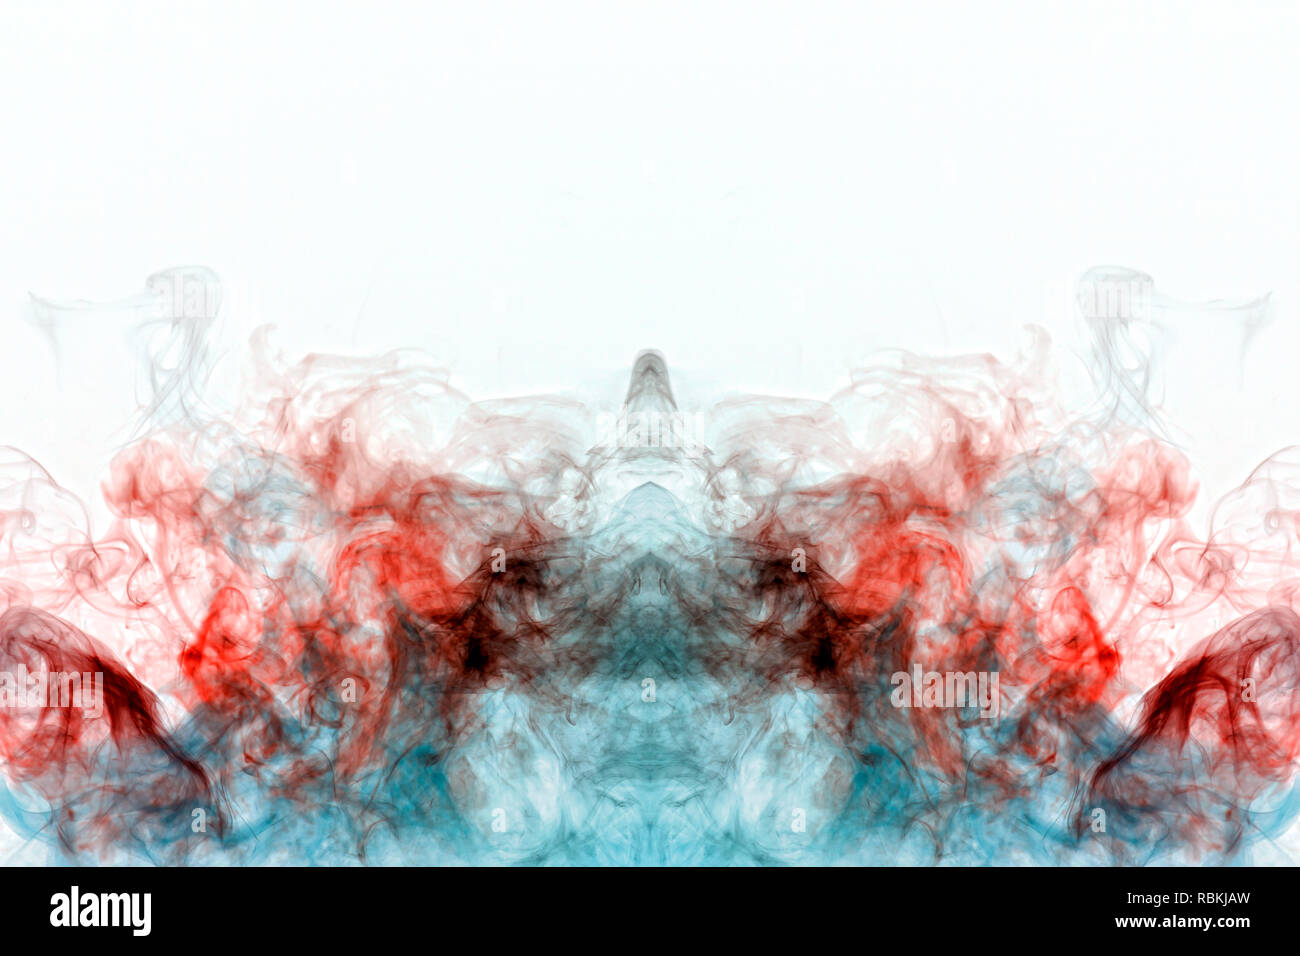 Multicolored curling smoke, red blue vapor, curled into abstract shapes and patterns on a white background, repeating the movement of waves and a chem - Stock Image